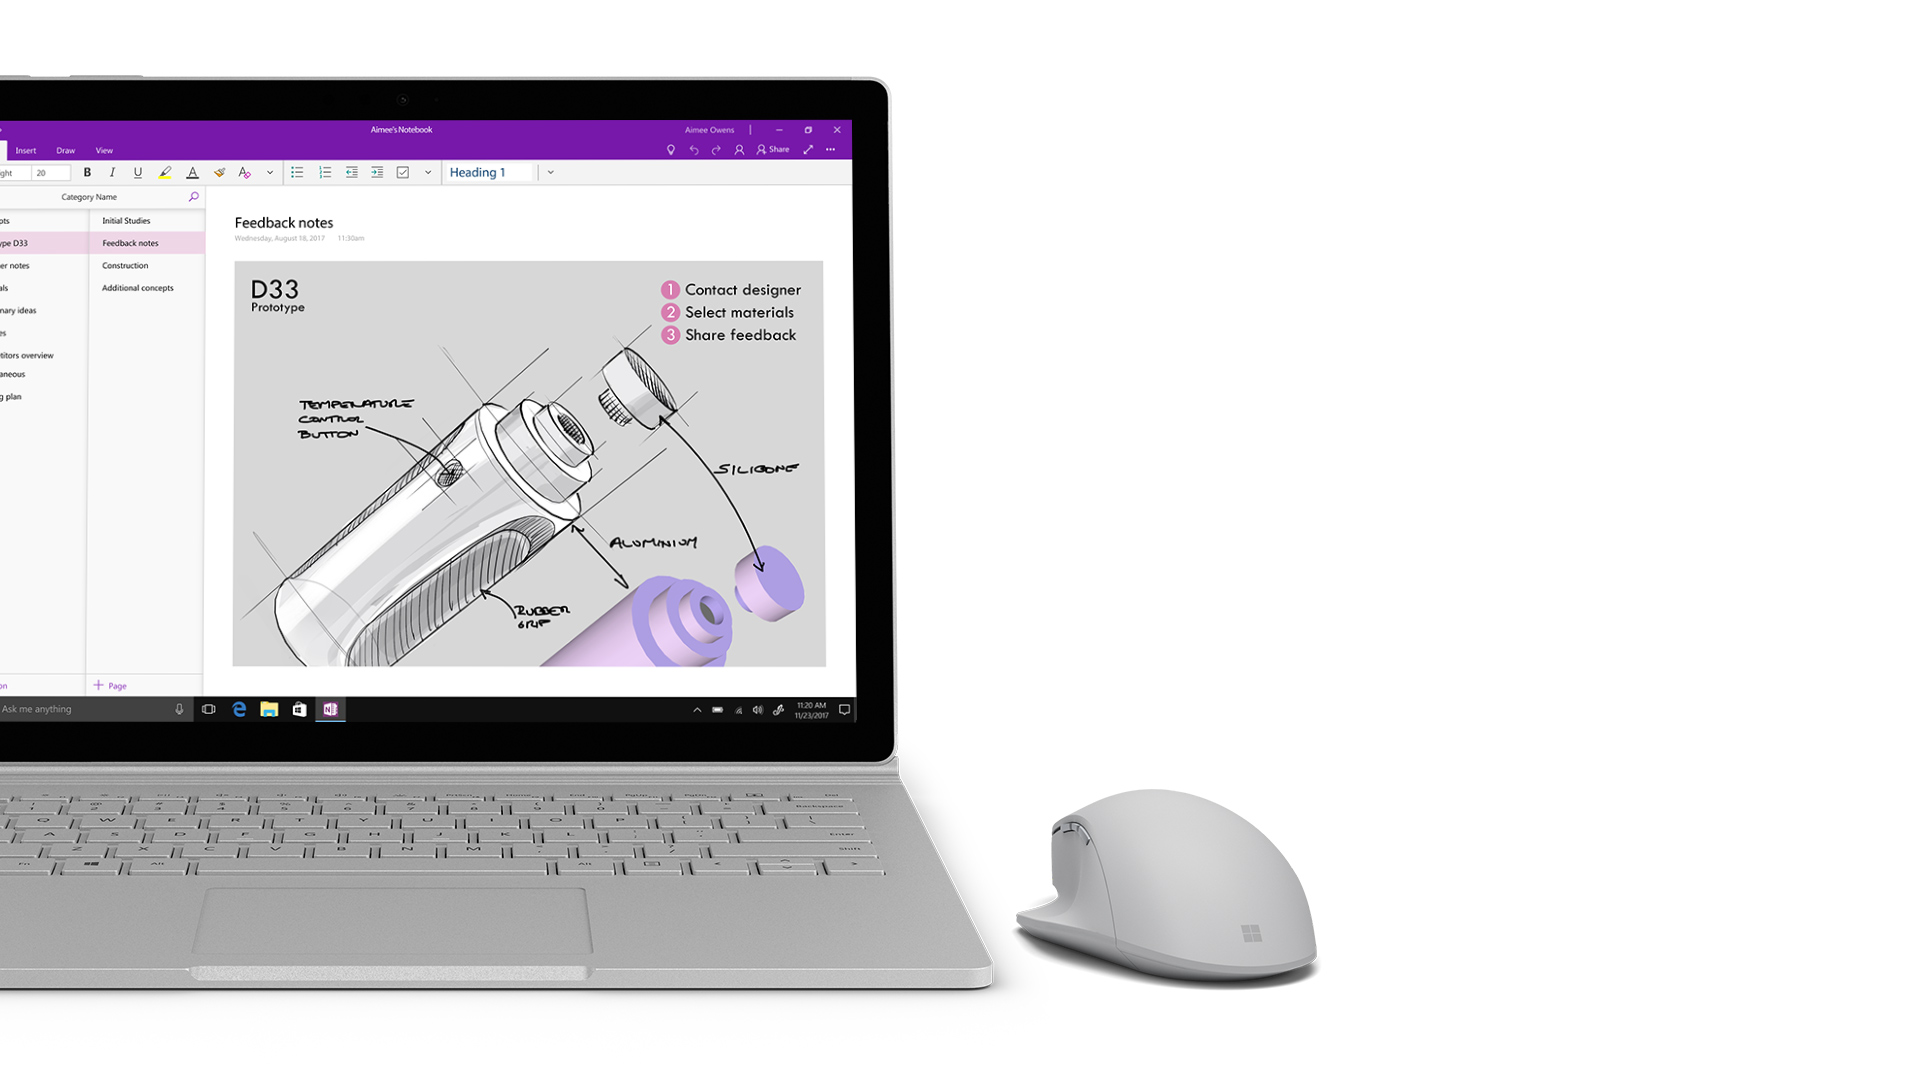 Surface 显示 OneNote 屏幕截图。